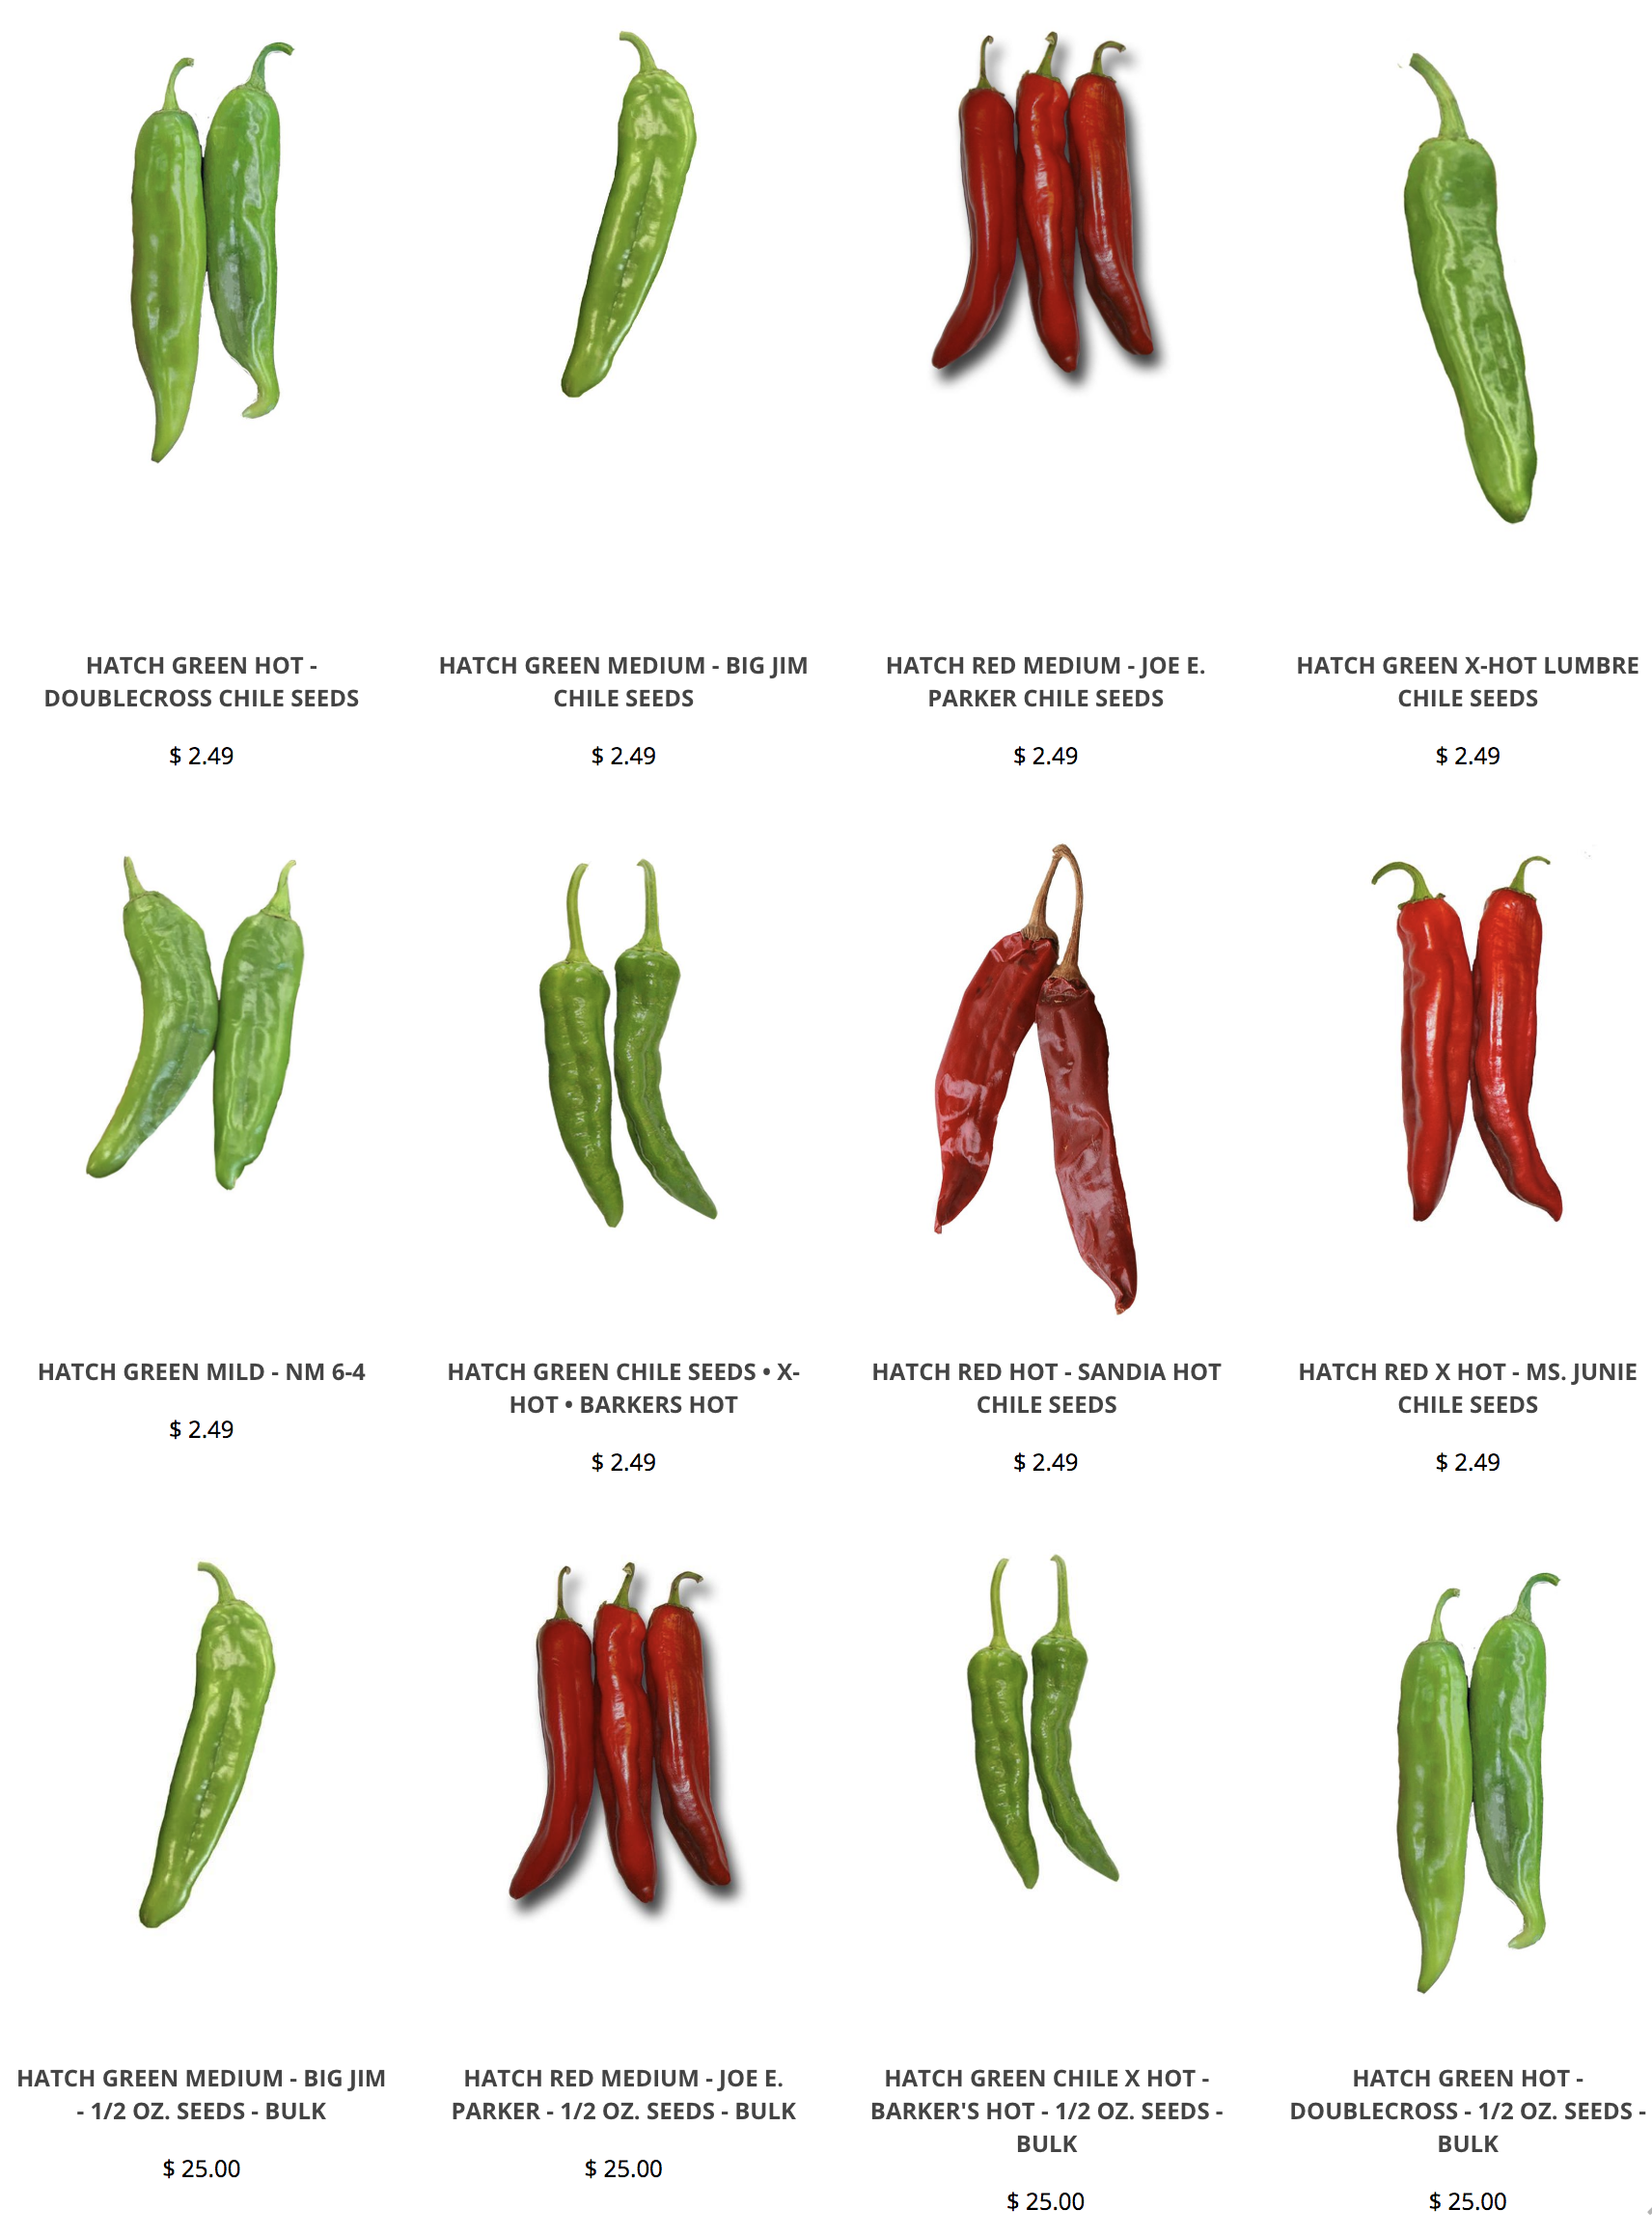 Hatch Chile Seeds Hatch Chile Green Chile Hatch Green Chile